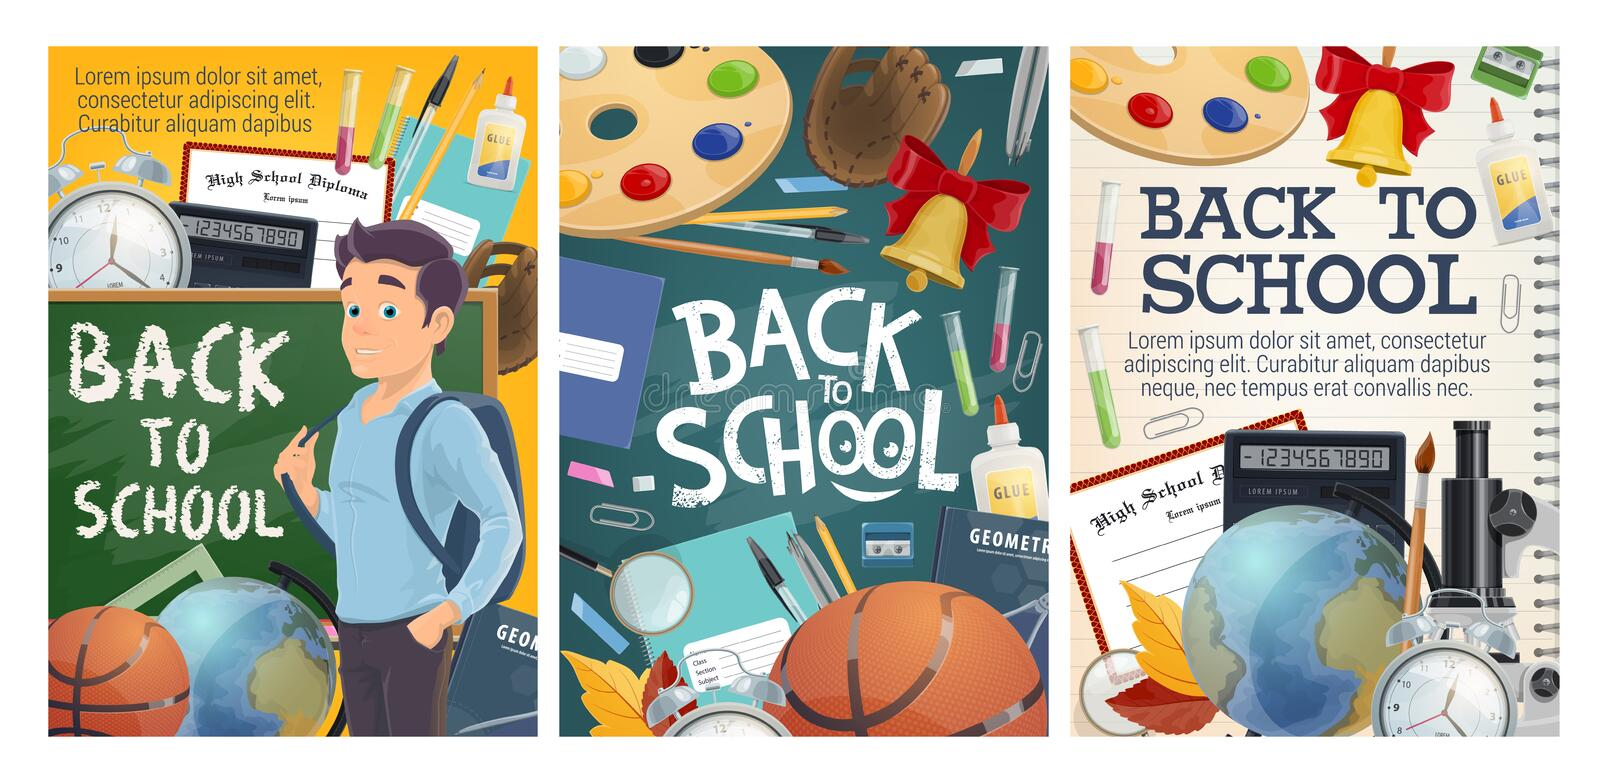 Back to school education and college study posters vector illustration